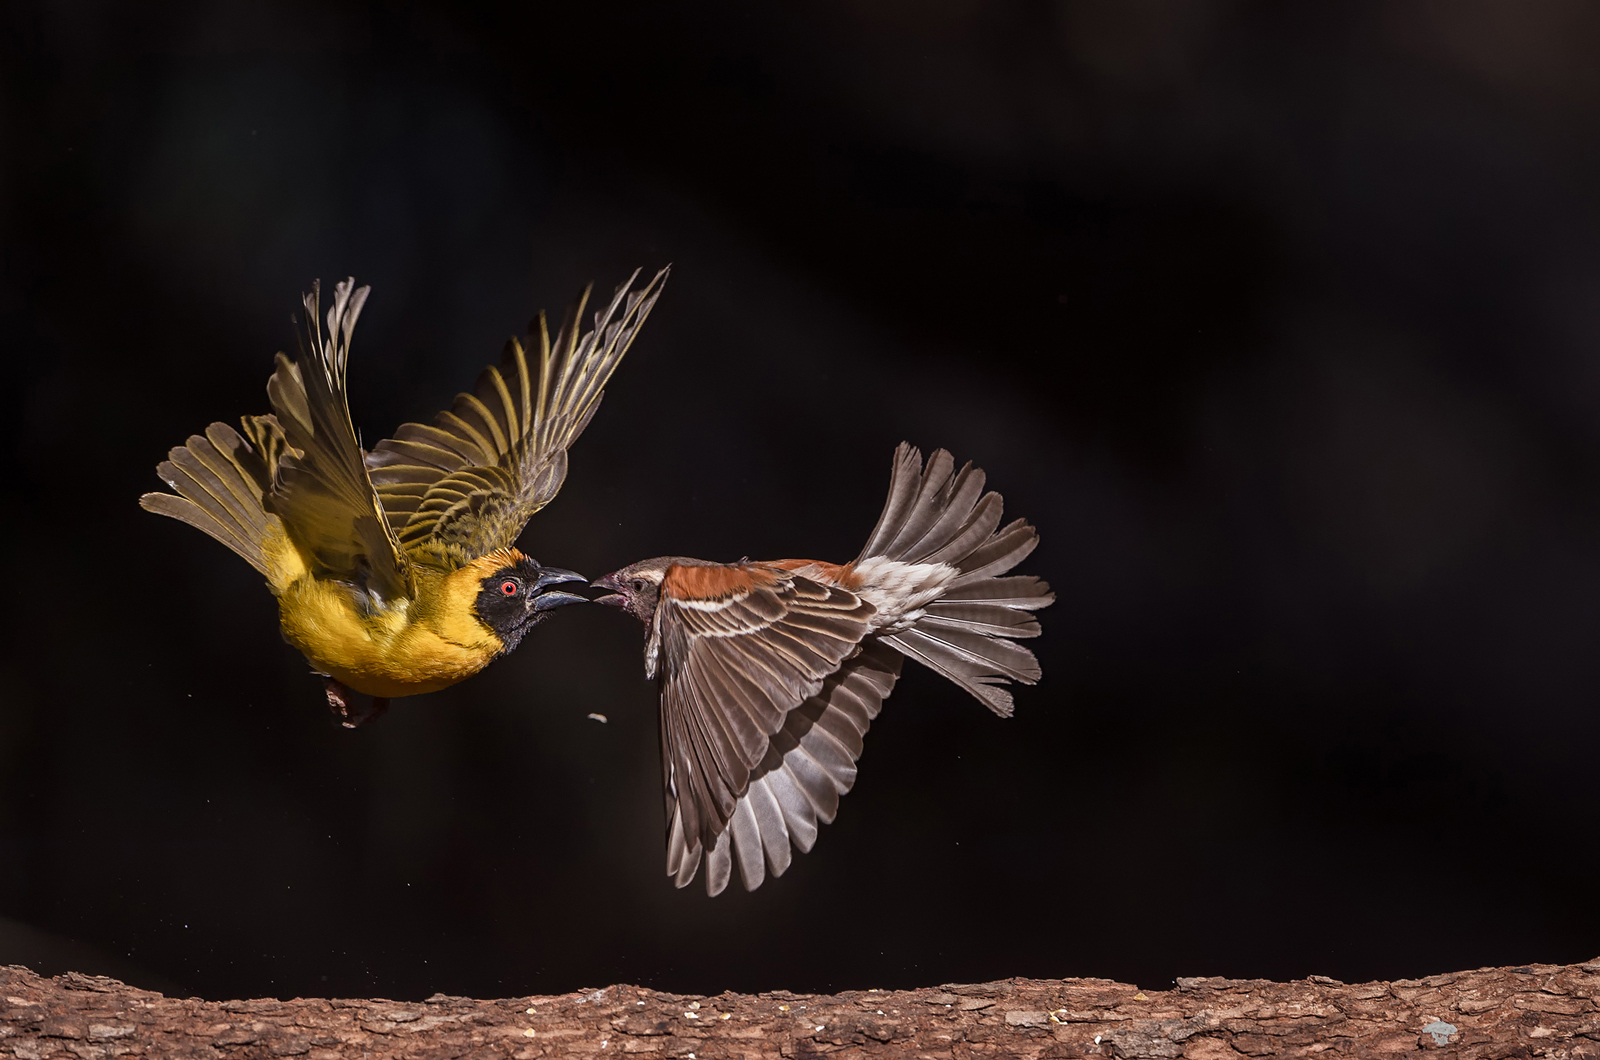 A male southern masked weaver fights with a female Cape sparrow in Bloemfontein, South Africa ©Willem Kruger